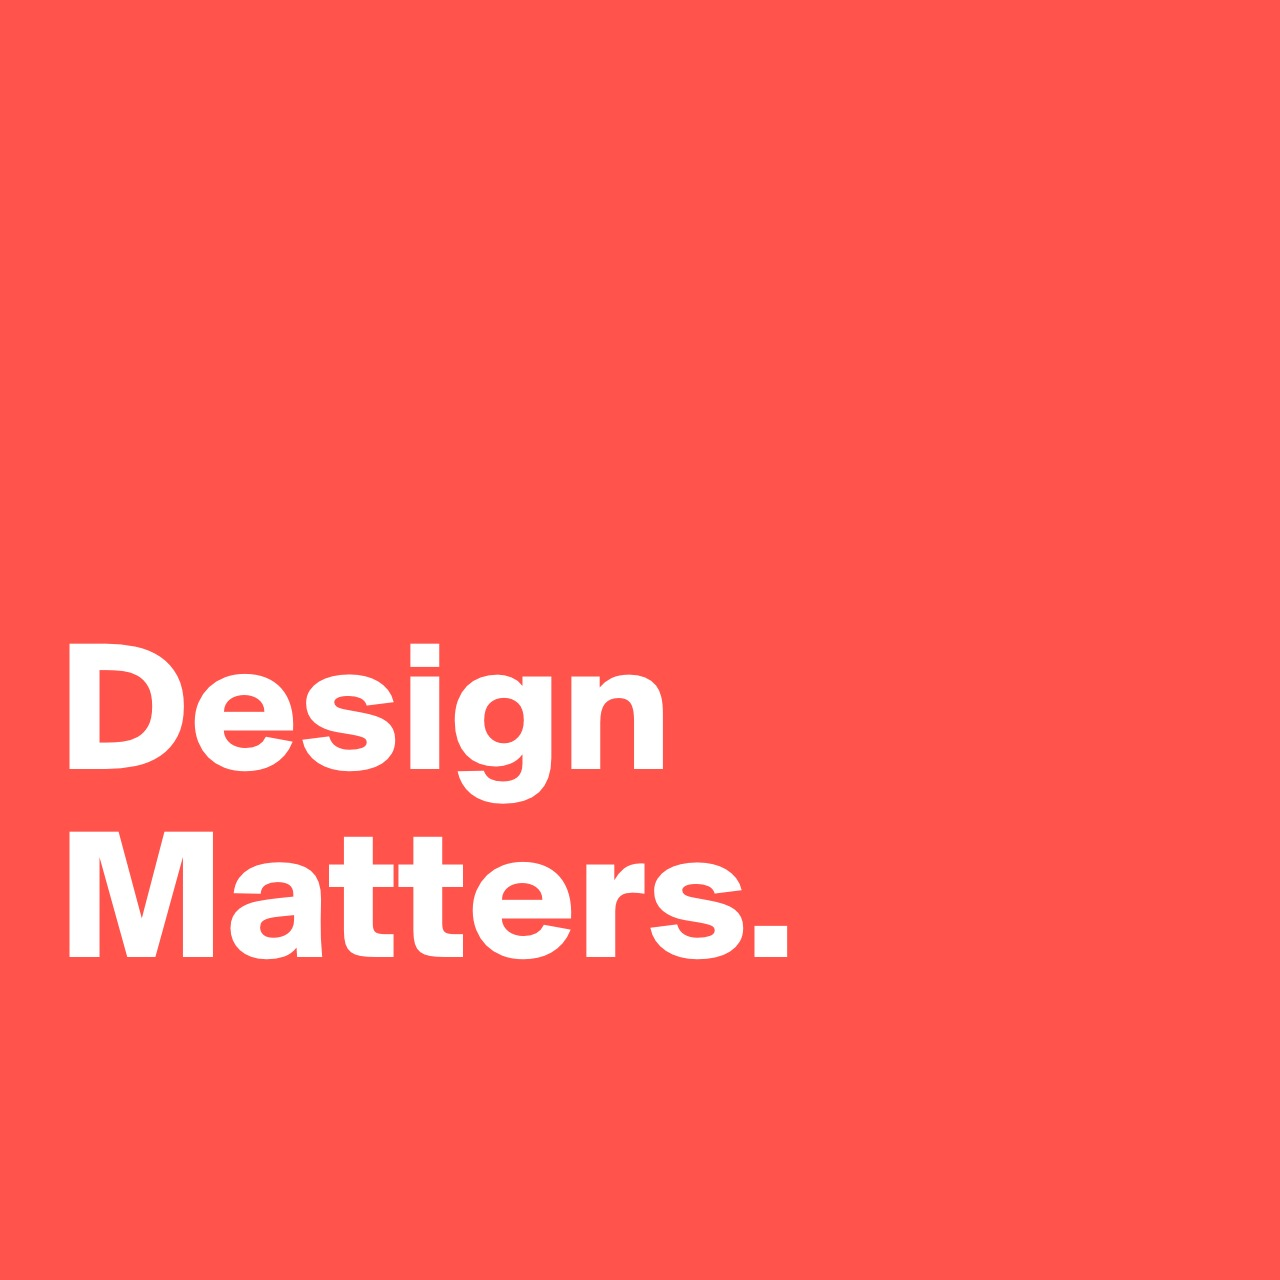 Design Matters, The Red Rabbit Studio